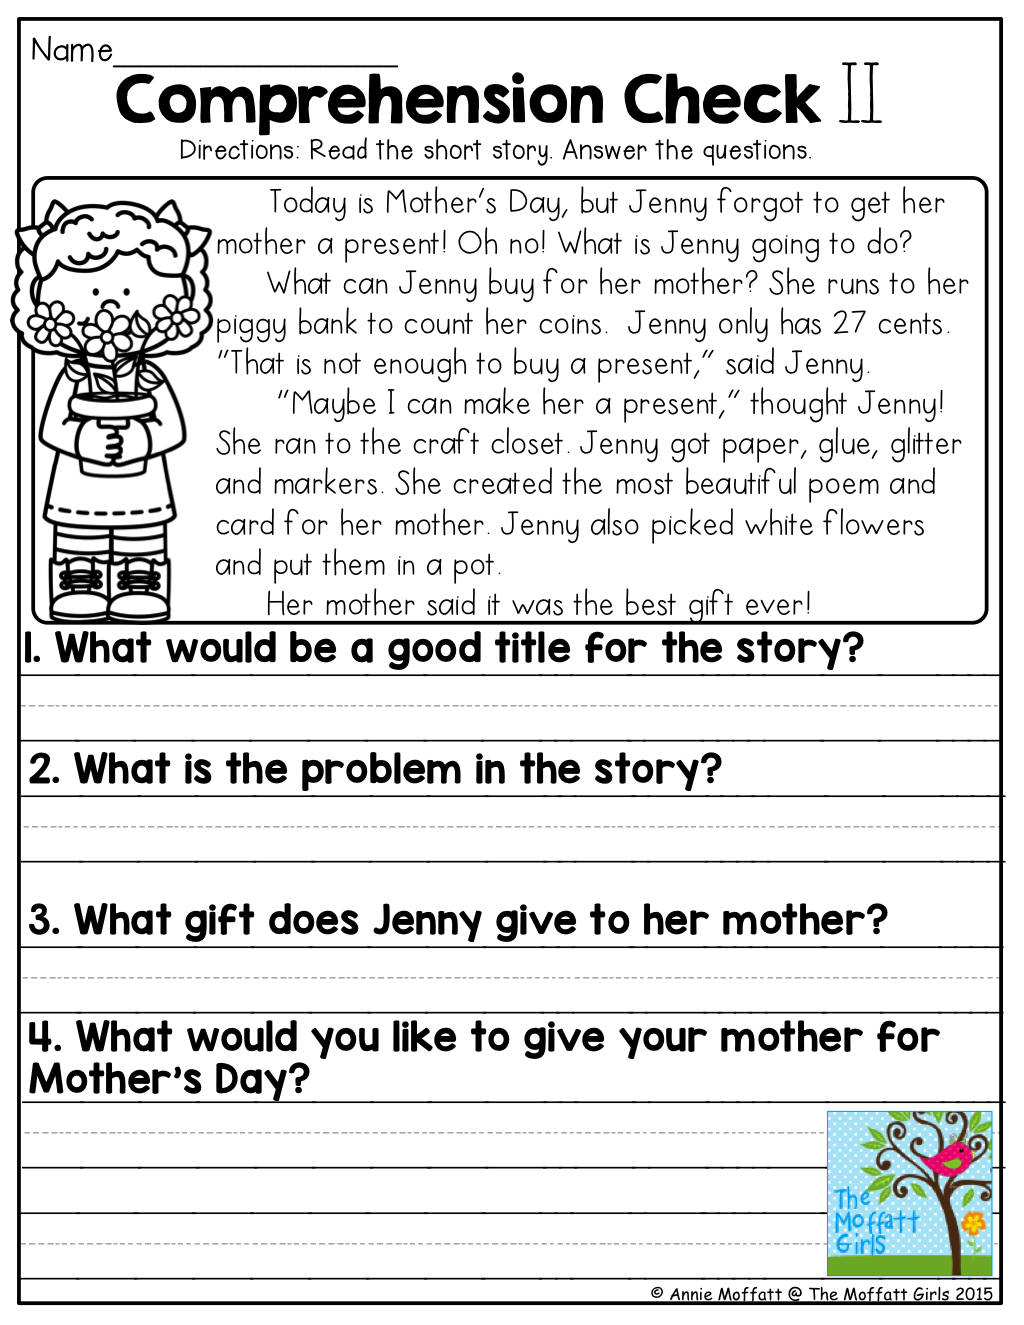 Worksheet Comprehension Check Worksheets 1000 images about reading comprehension on pinterest worksheets and printables